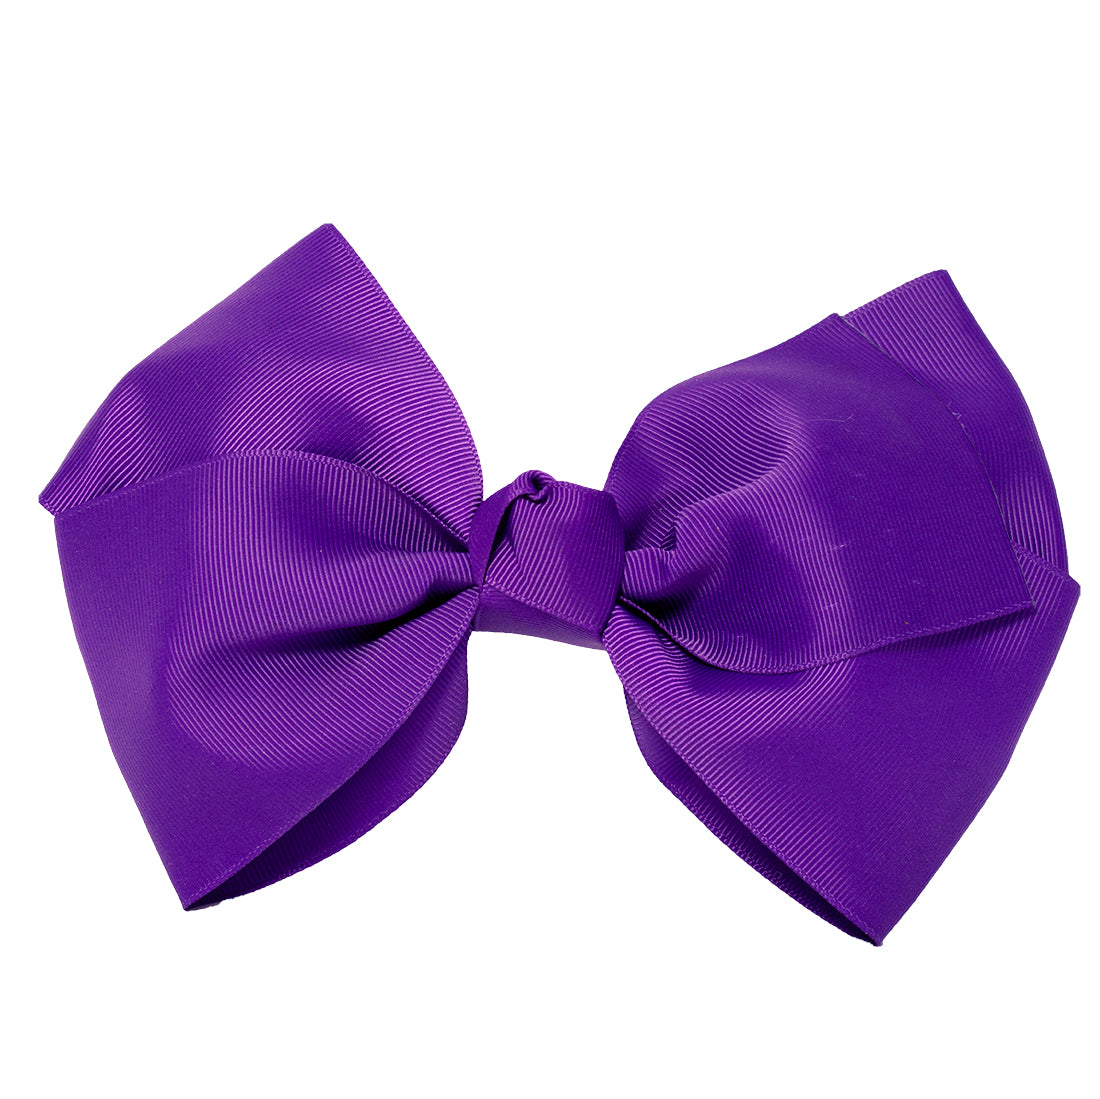 Mia Spirit Extra Large Grosgrain Bow Barrette - purple color - designed by #MiaKaminski of Mia Beauty